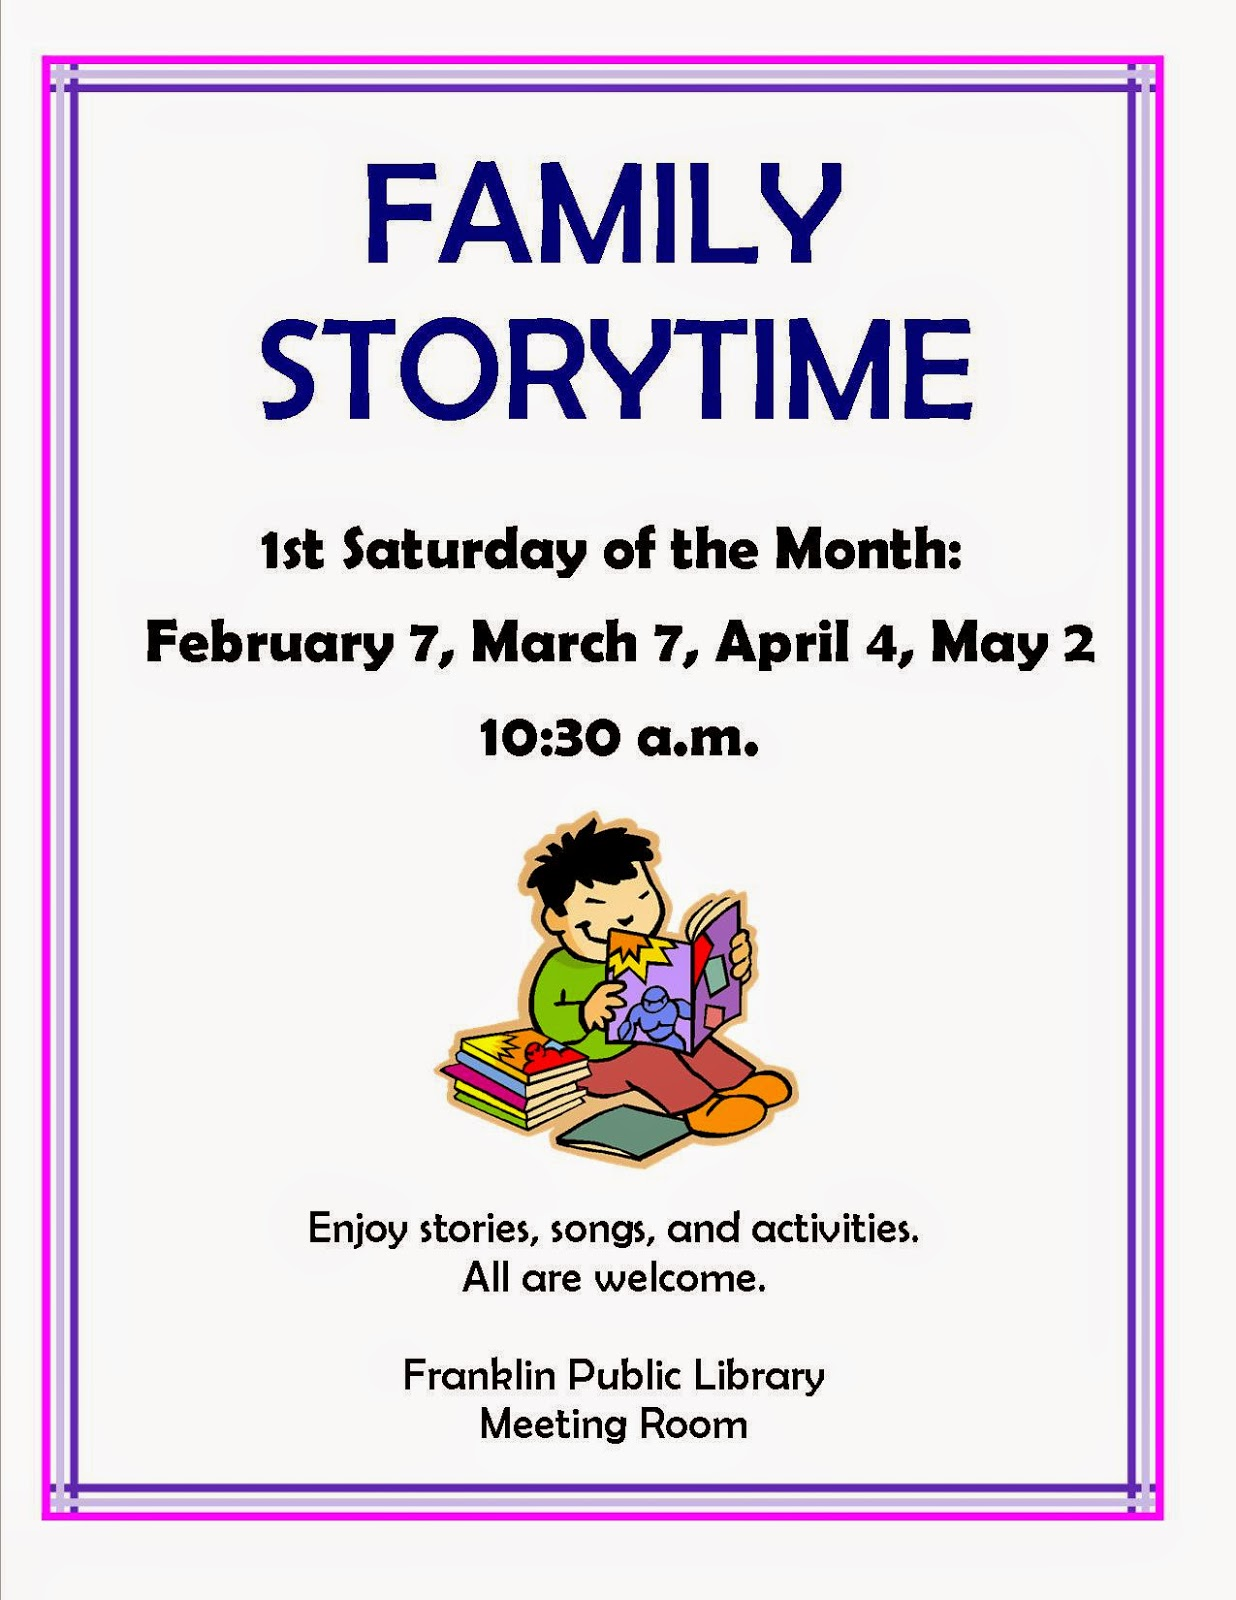 family story time, 1st Saturday of the month